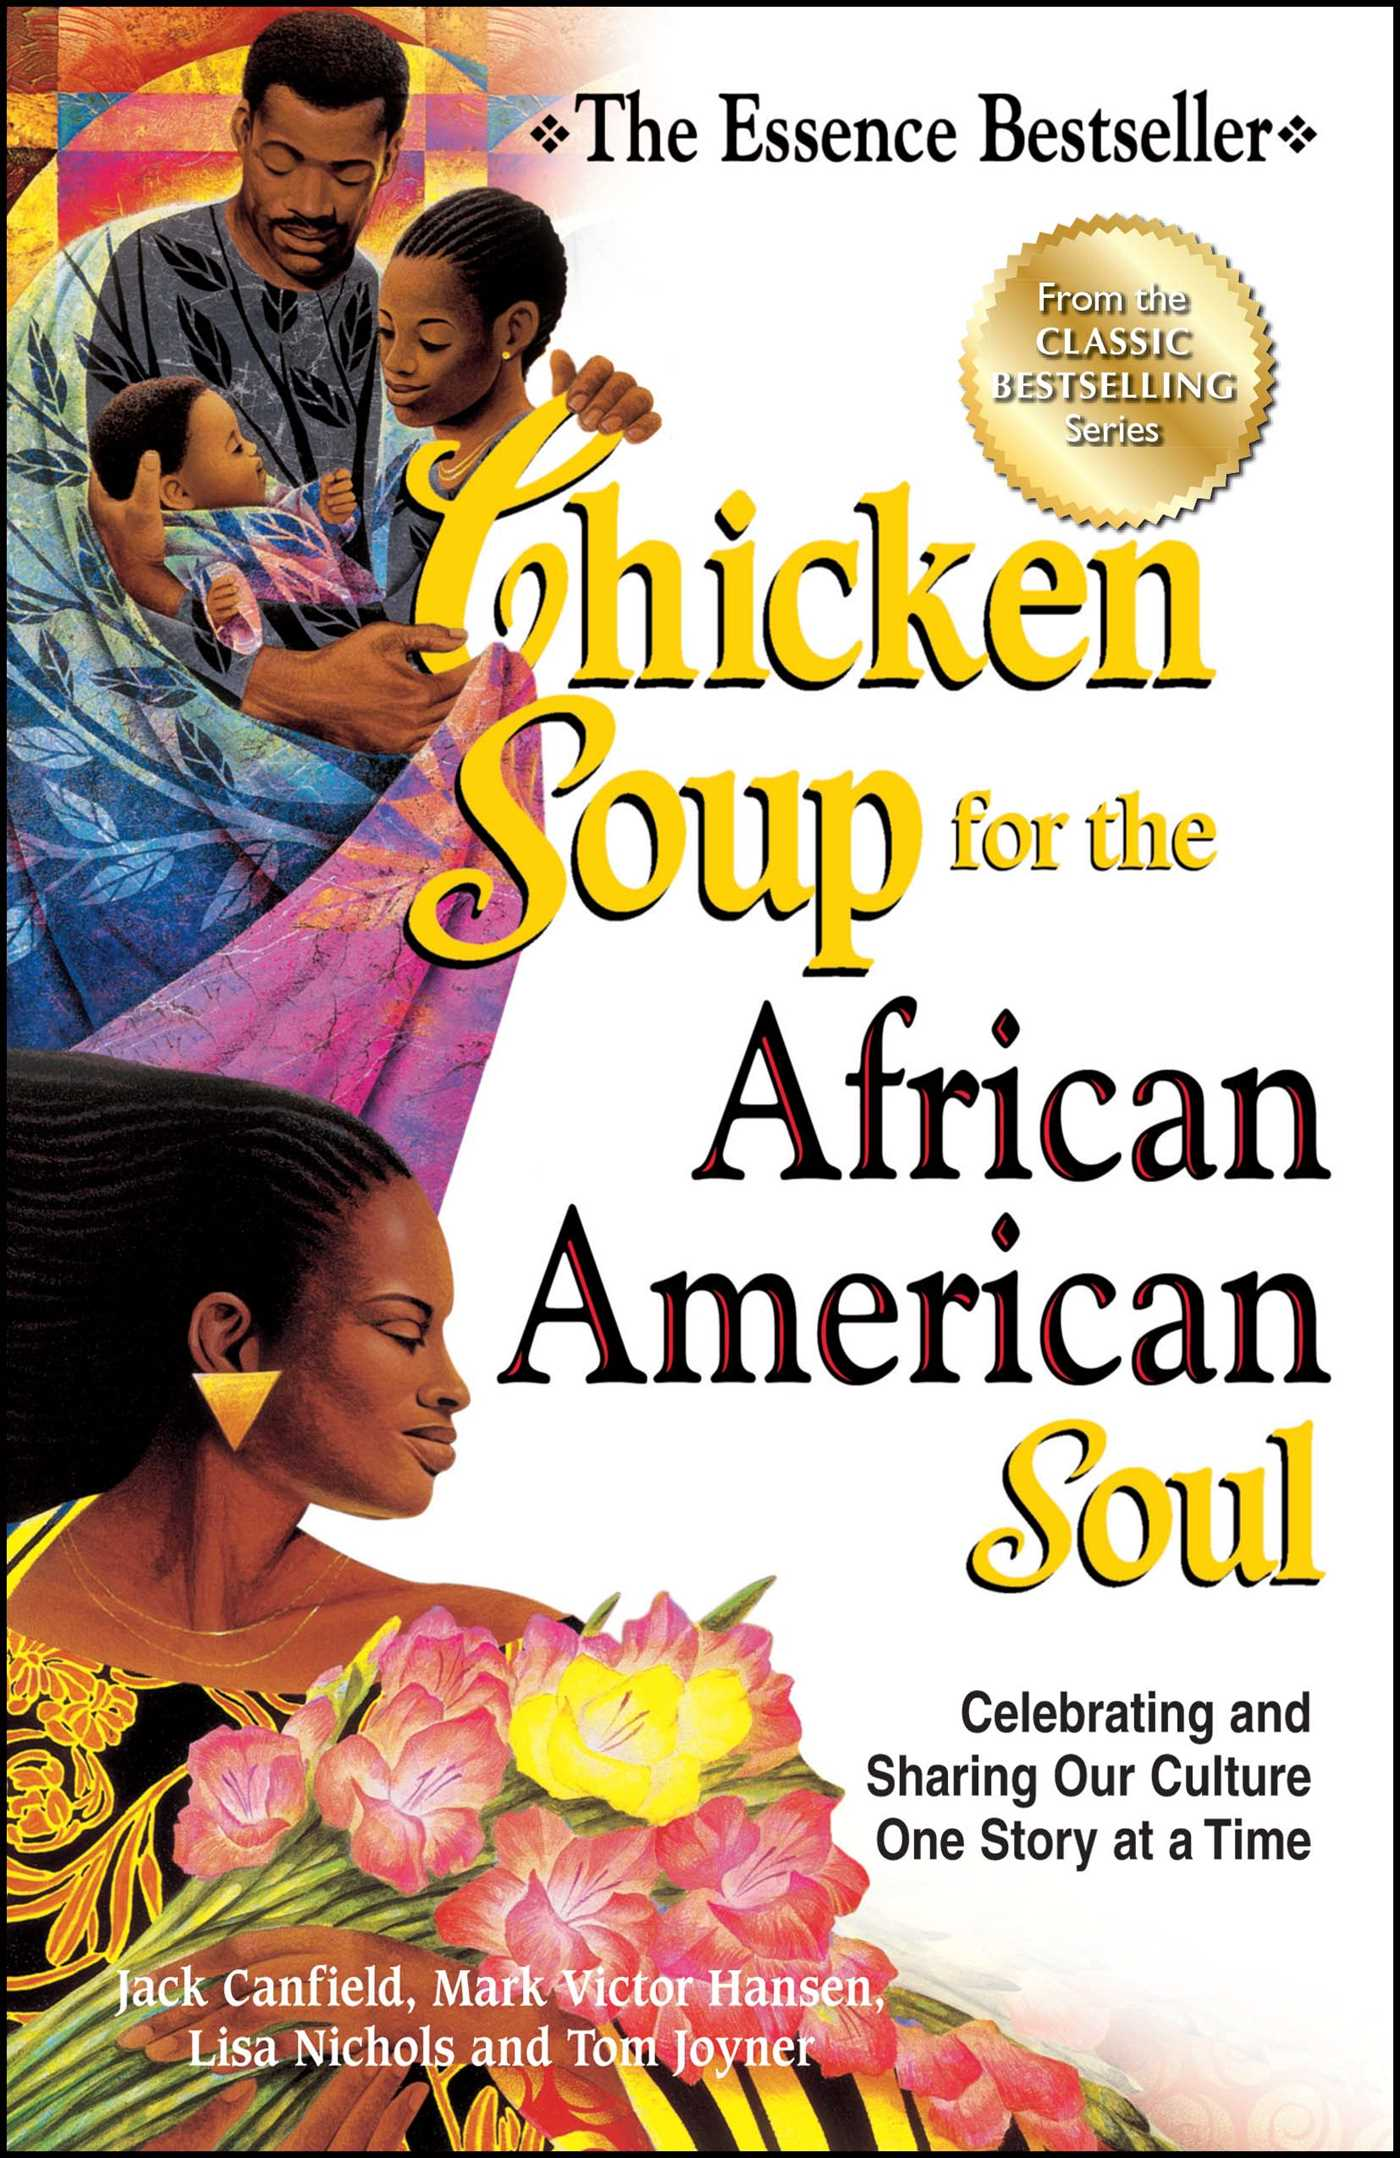 Chicken soup for the african american soul 9781623610142 hr